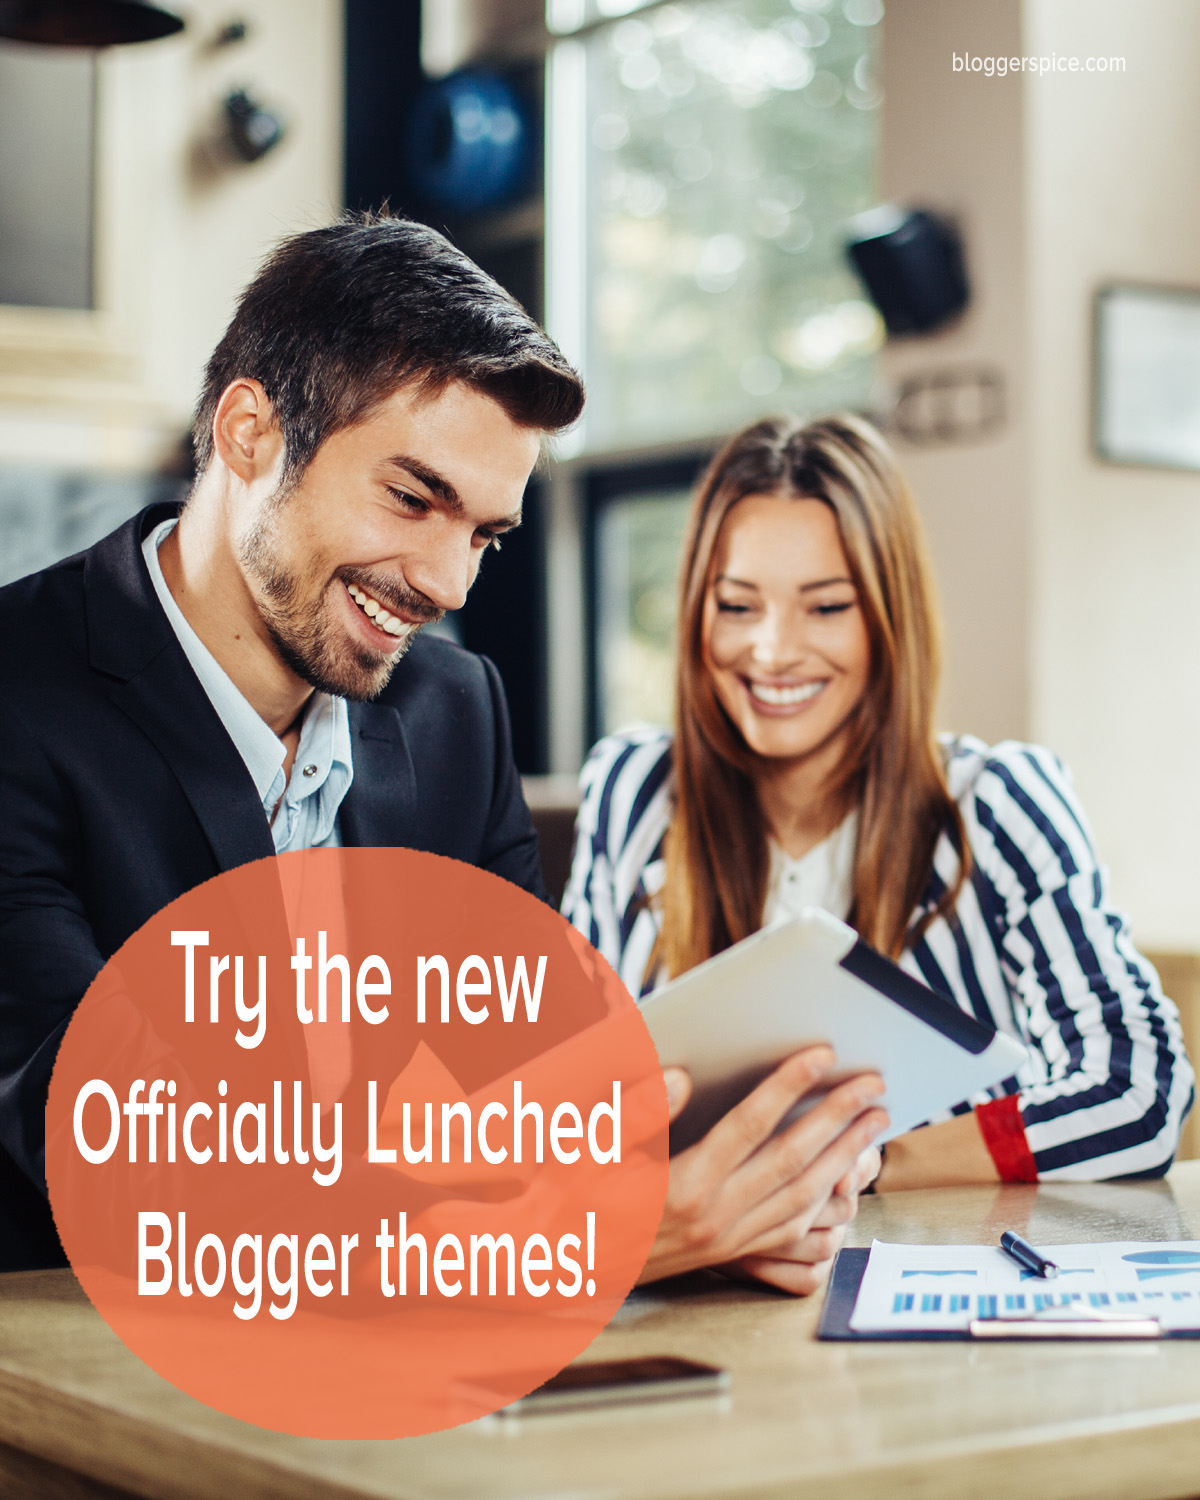 Blogger Officially Lunched 4 stylish new Responsive Themes